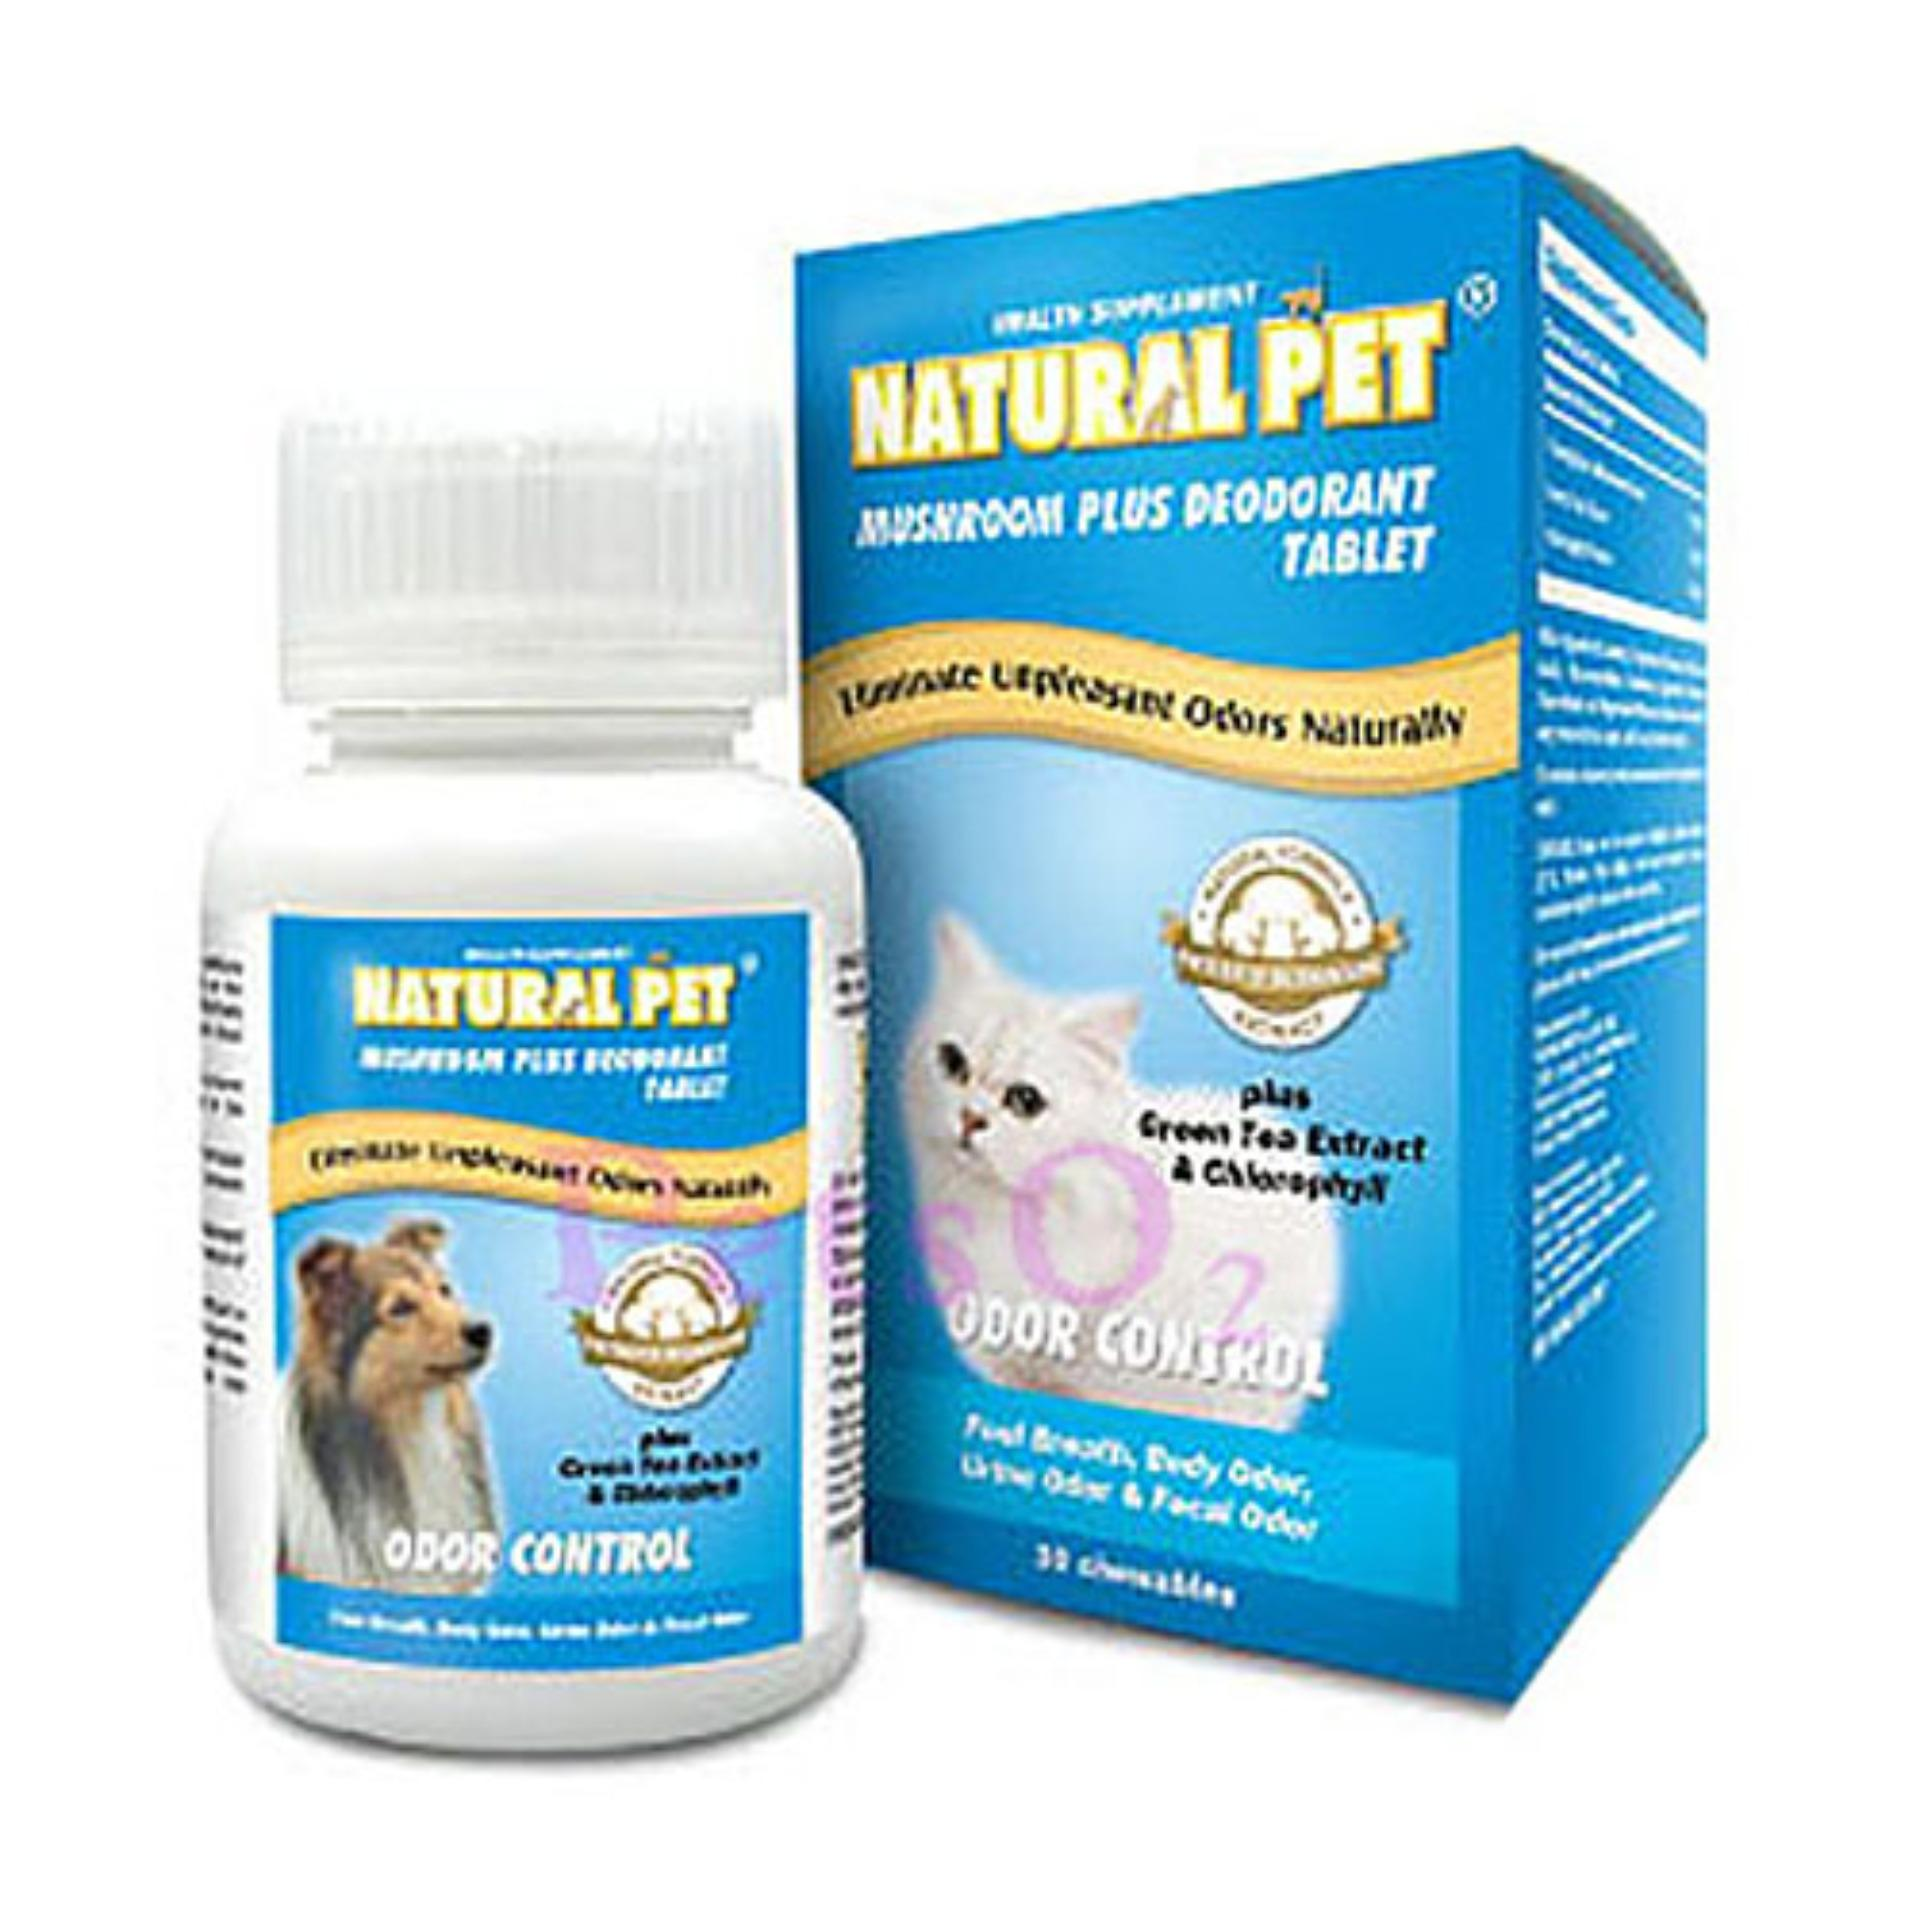 Natural Pet - Mushroom Extract Deodorant Tablet 150tbs By Petso2.